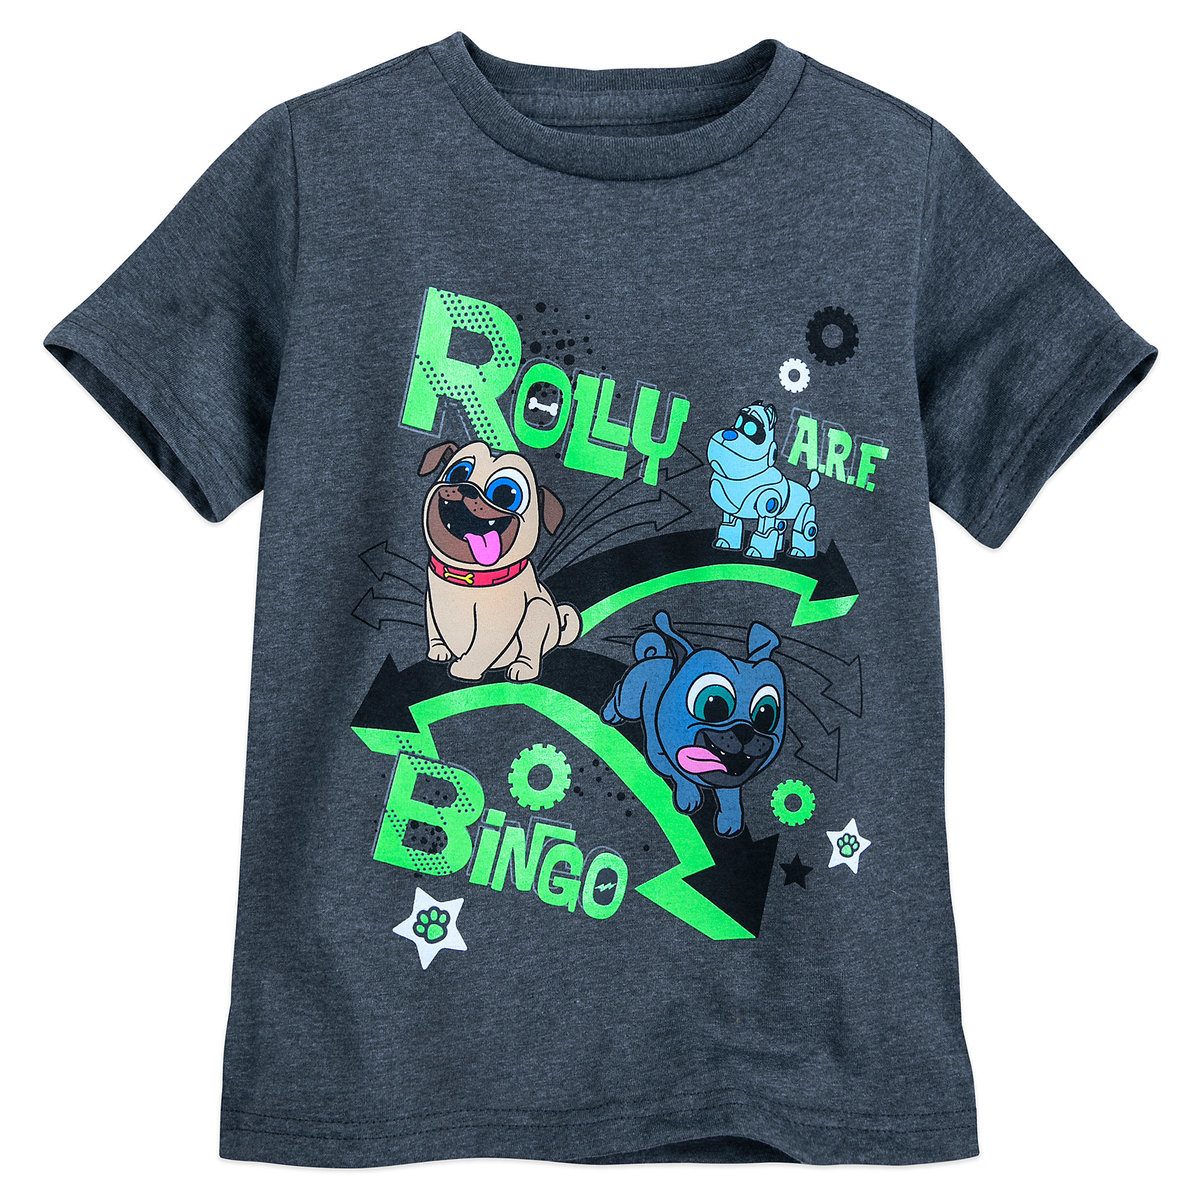 Puppy Dog Pals Glow In The Dark T Shirt For Boys Shopdisney